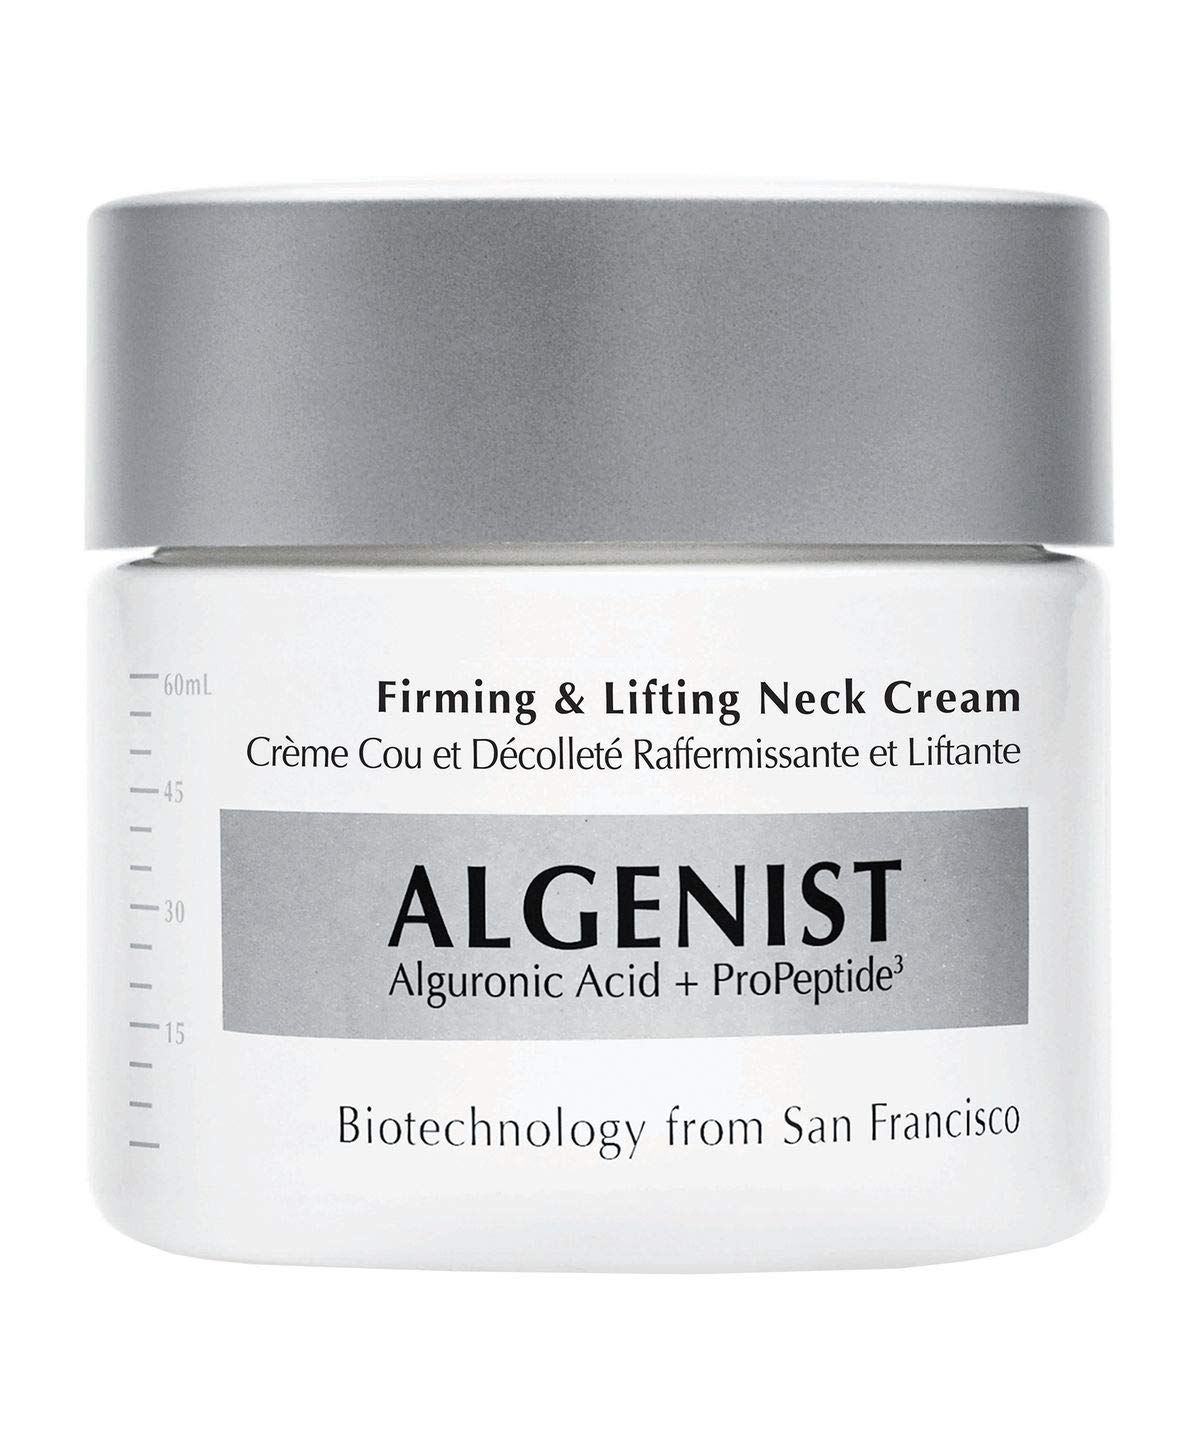 Algenist Firming and Lifting Neck Cream for Women Cream, 2 Ounces W-SC-2661